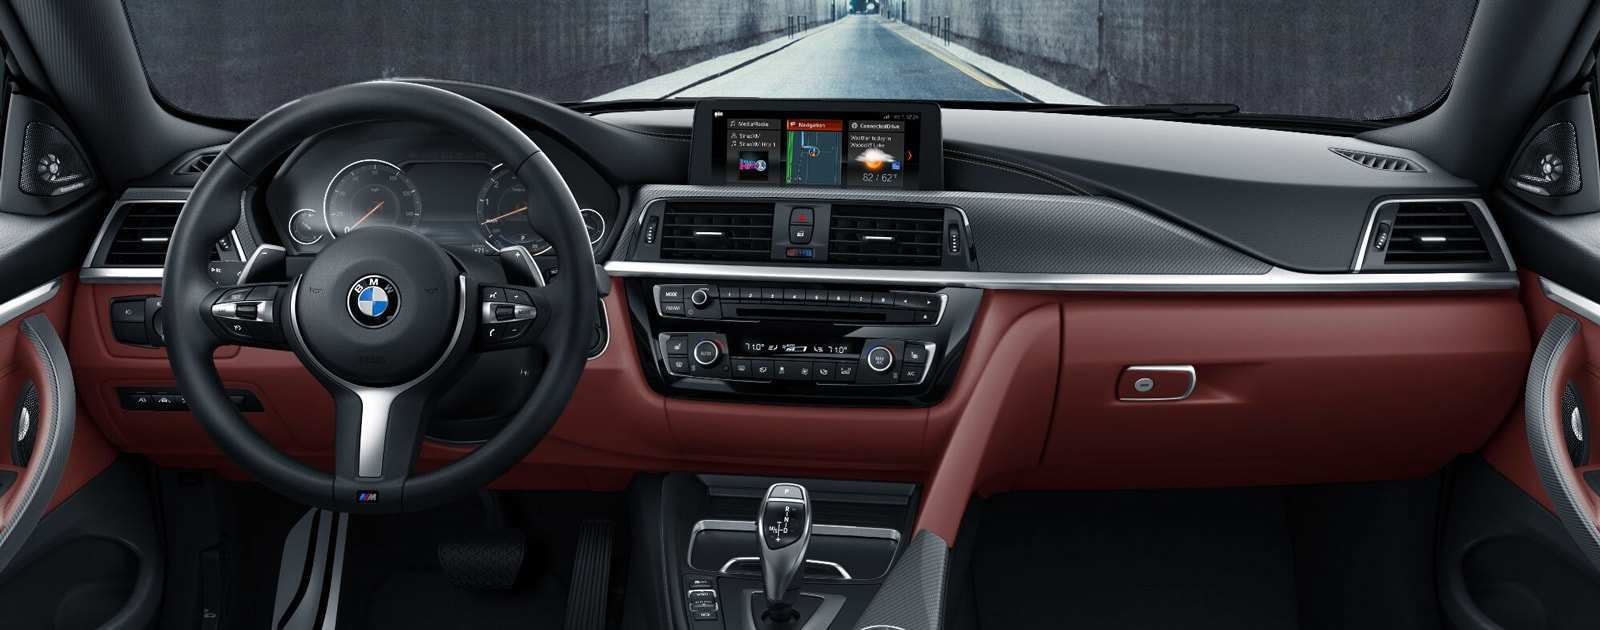 60 Gallery of 2019 Bmw 4 Series Interior Review by 2019 Bmw 4 Series Interior